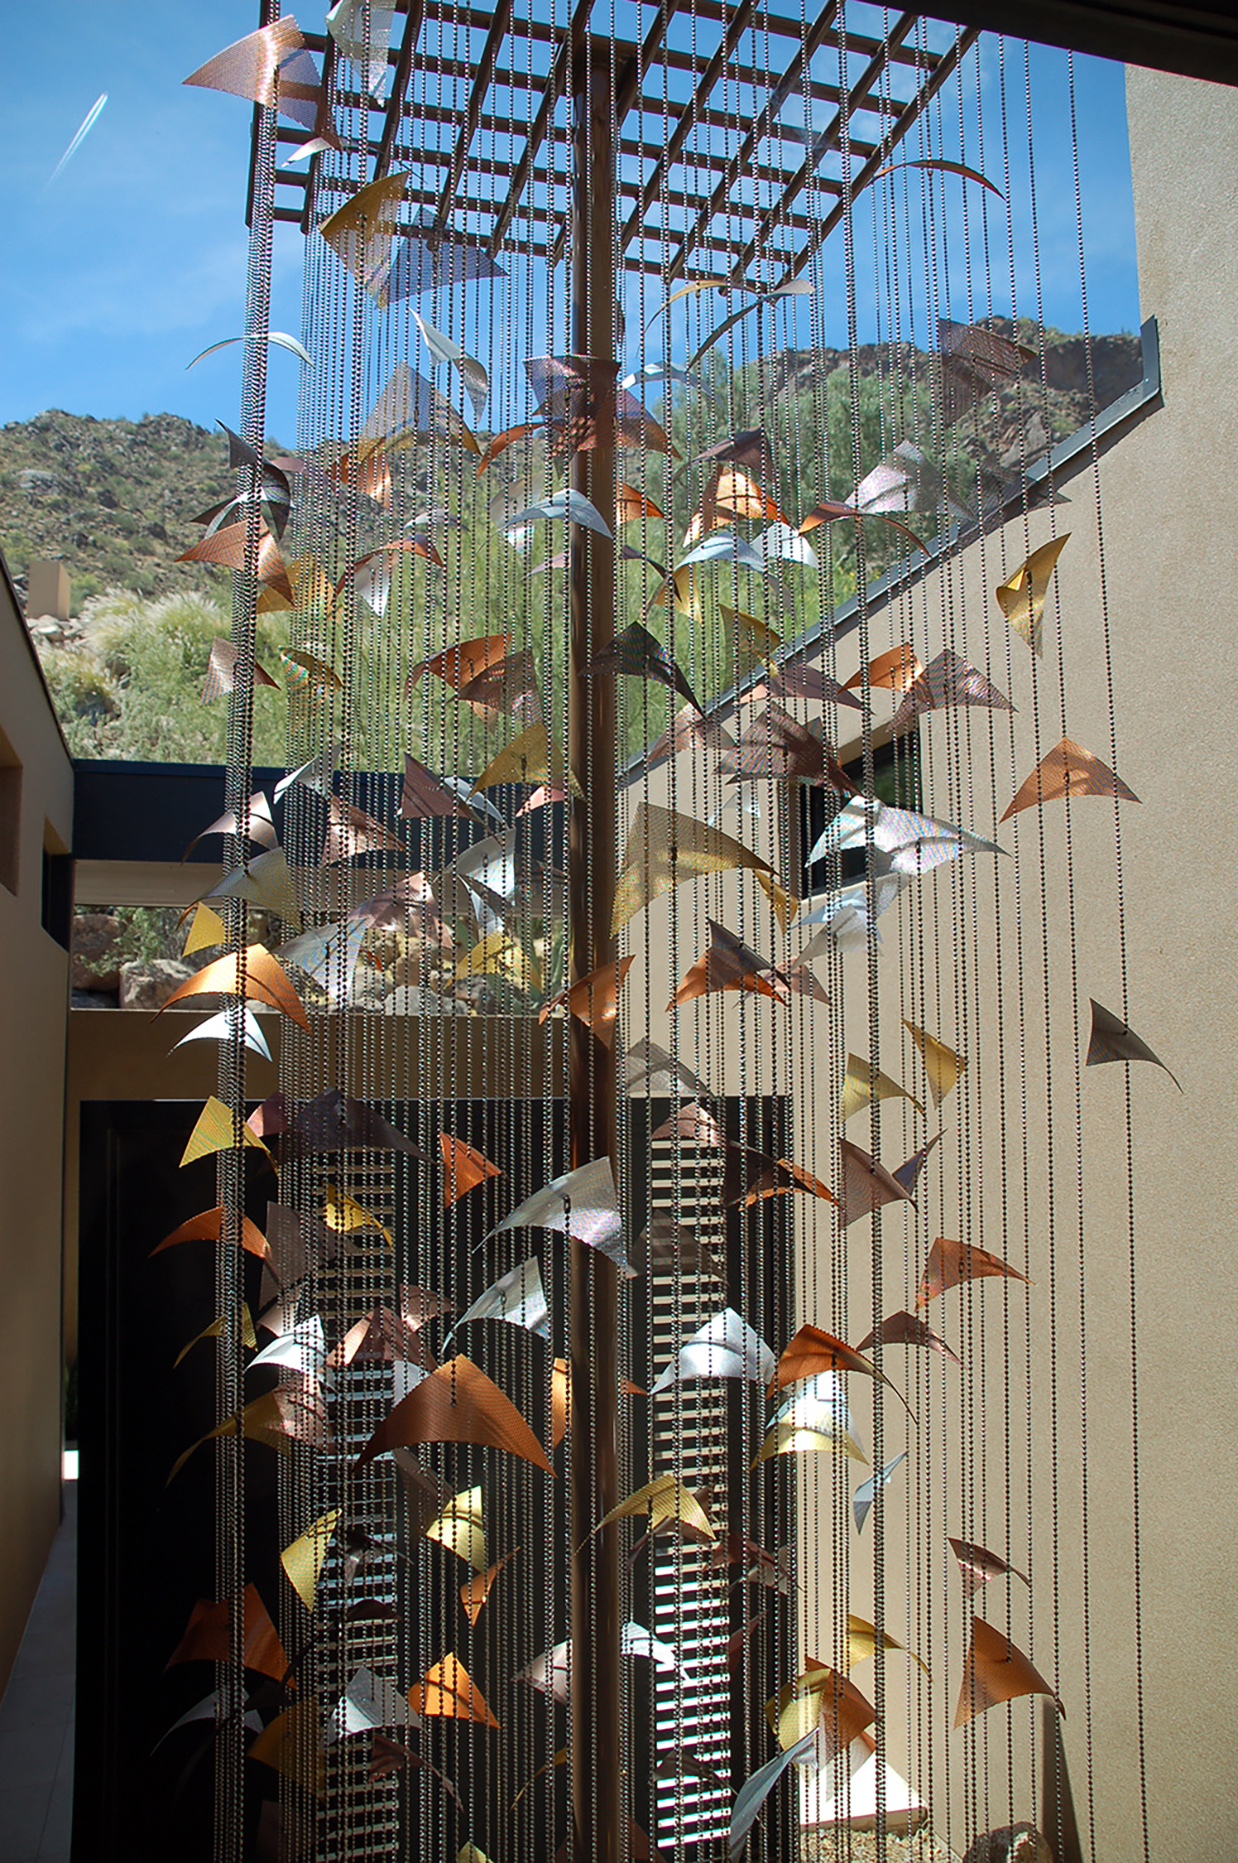 Residential sculpture by Talley Fisher in the Arizona desert